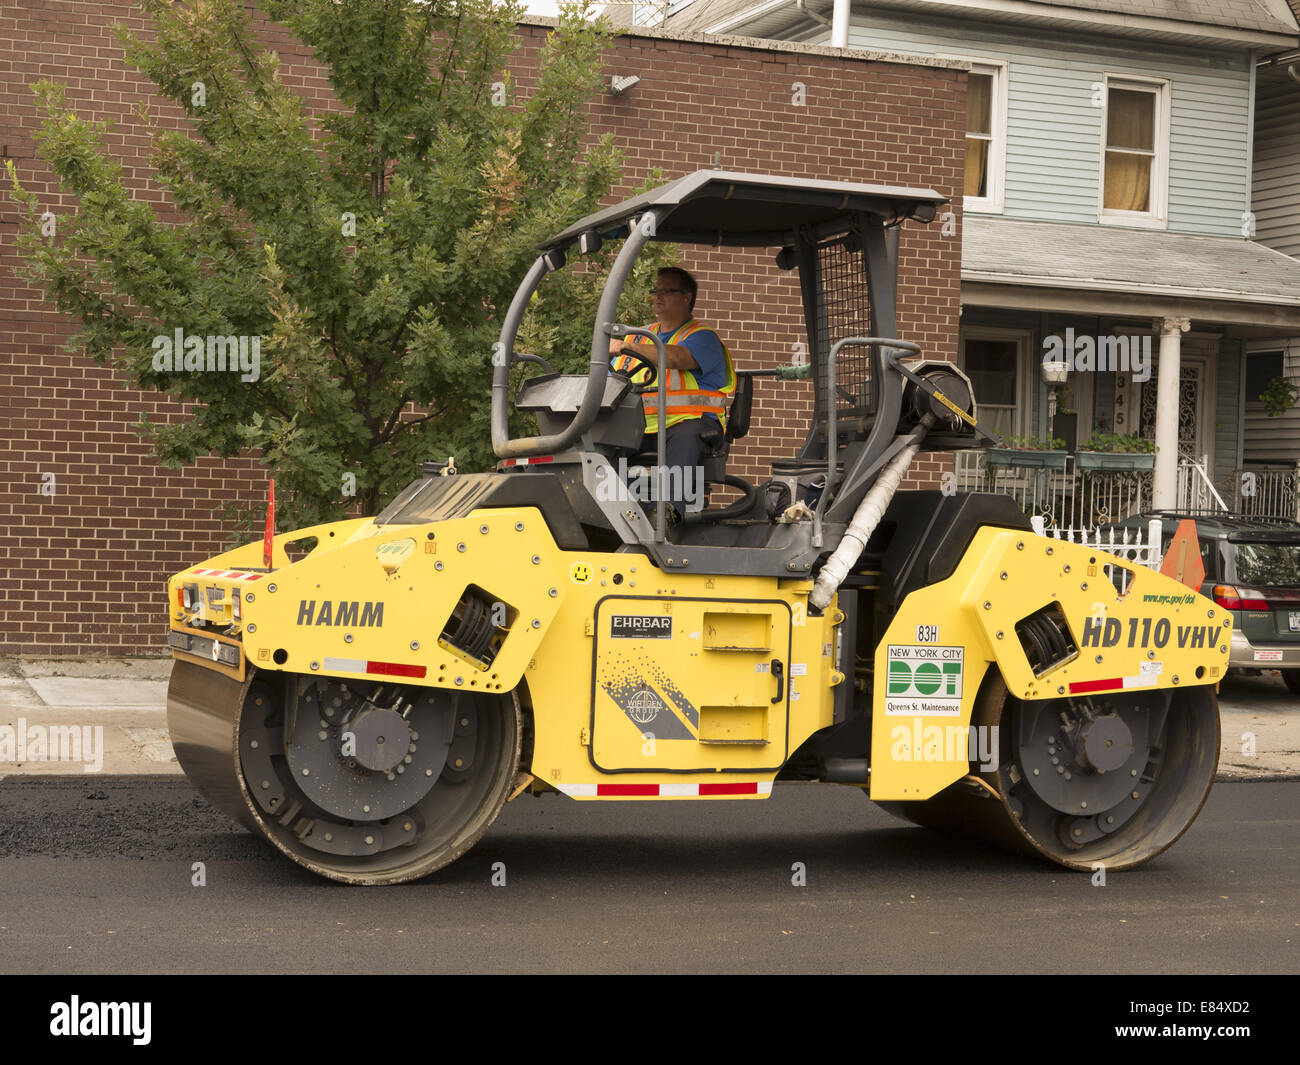 Road crew re-surfaces a street in Brooklyn, NY. - Stock Image